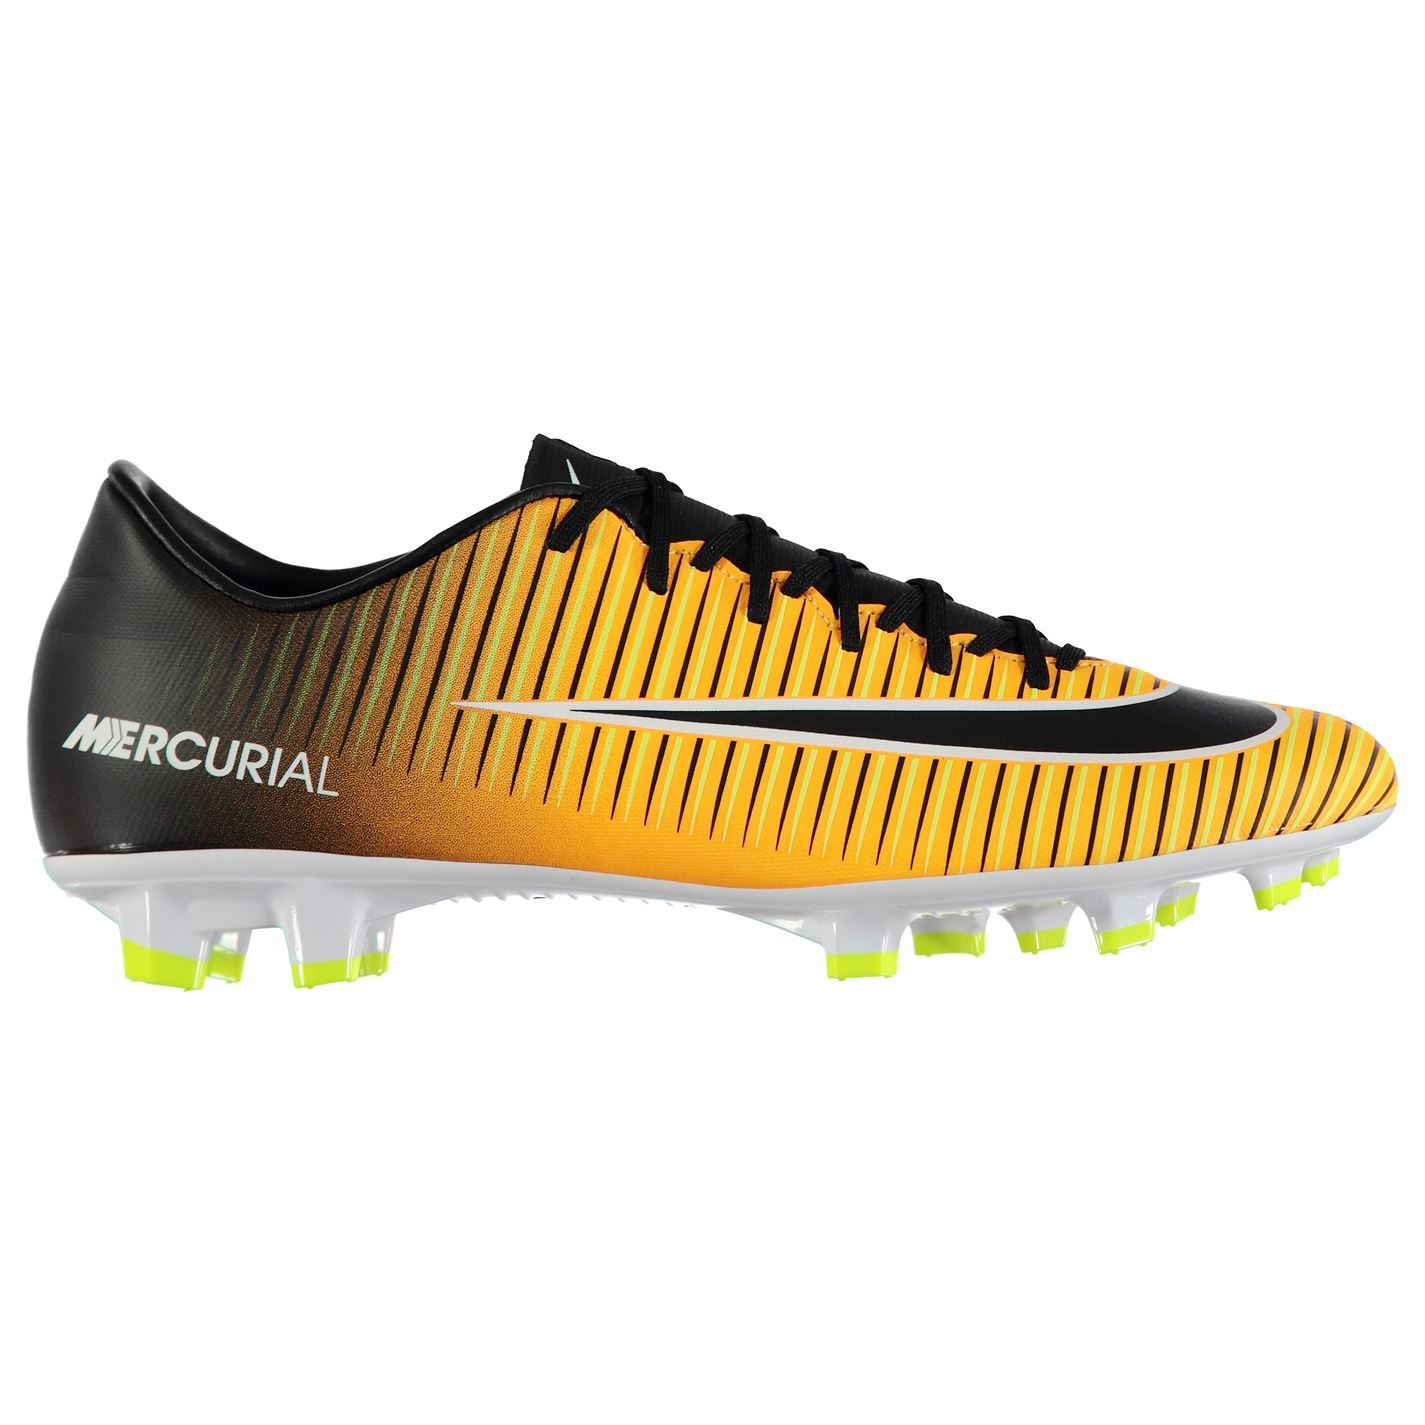 Nike Mercurial Victory Firm Ground Football Boots Mens Orange Soccer Shoe  Cleats 8a84f8feb28c7